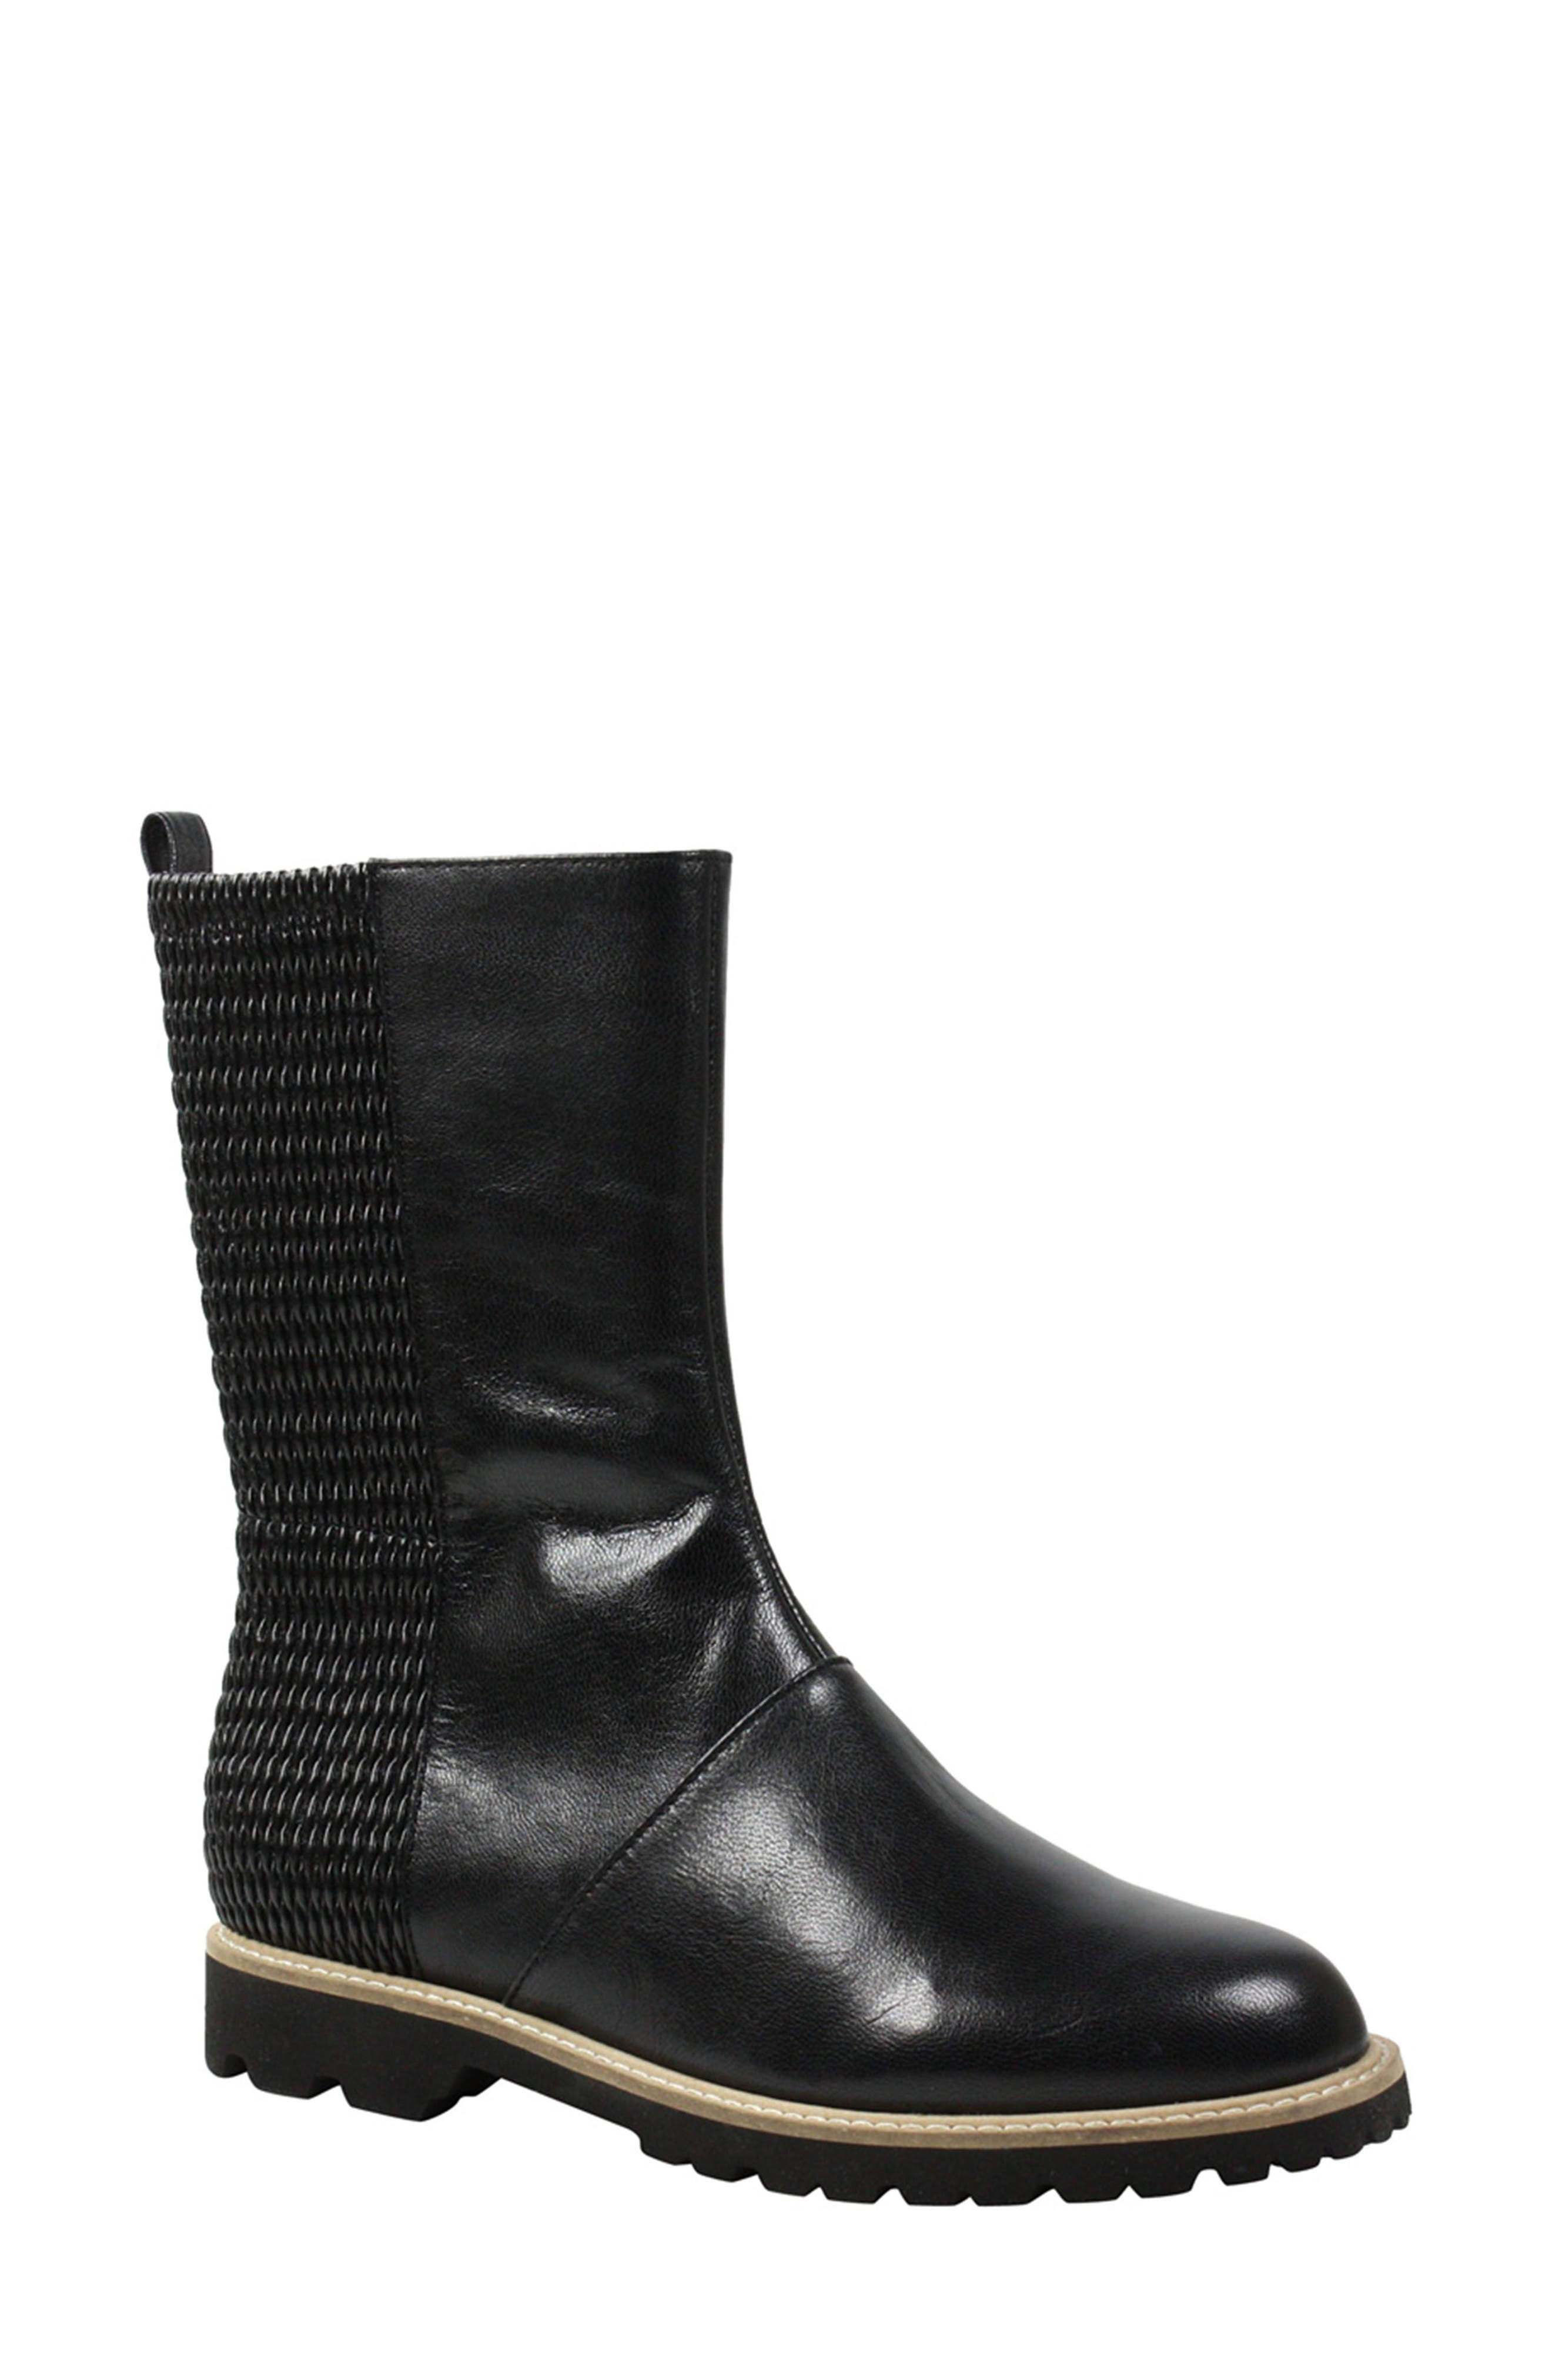 Reyney Boot,                         Main,                         color, Black Leather